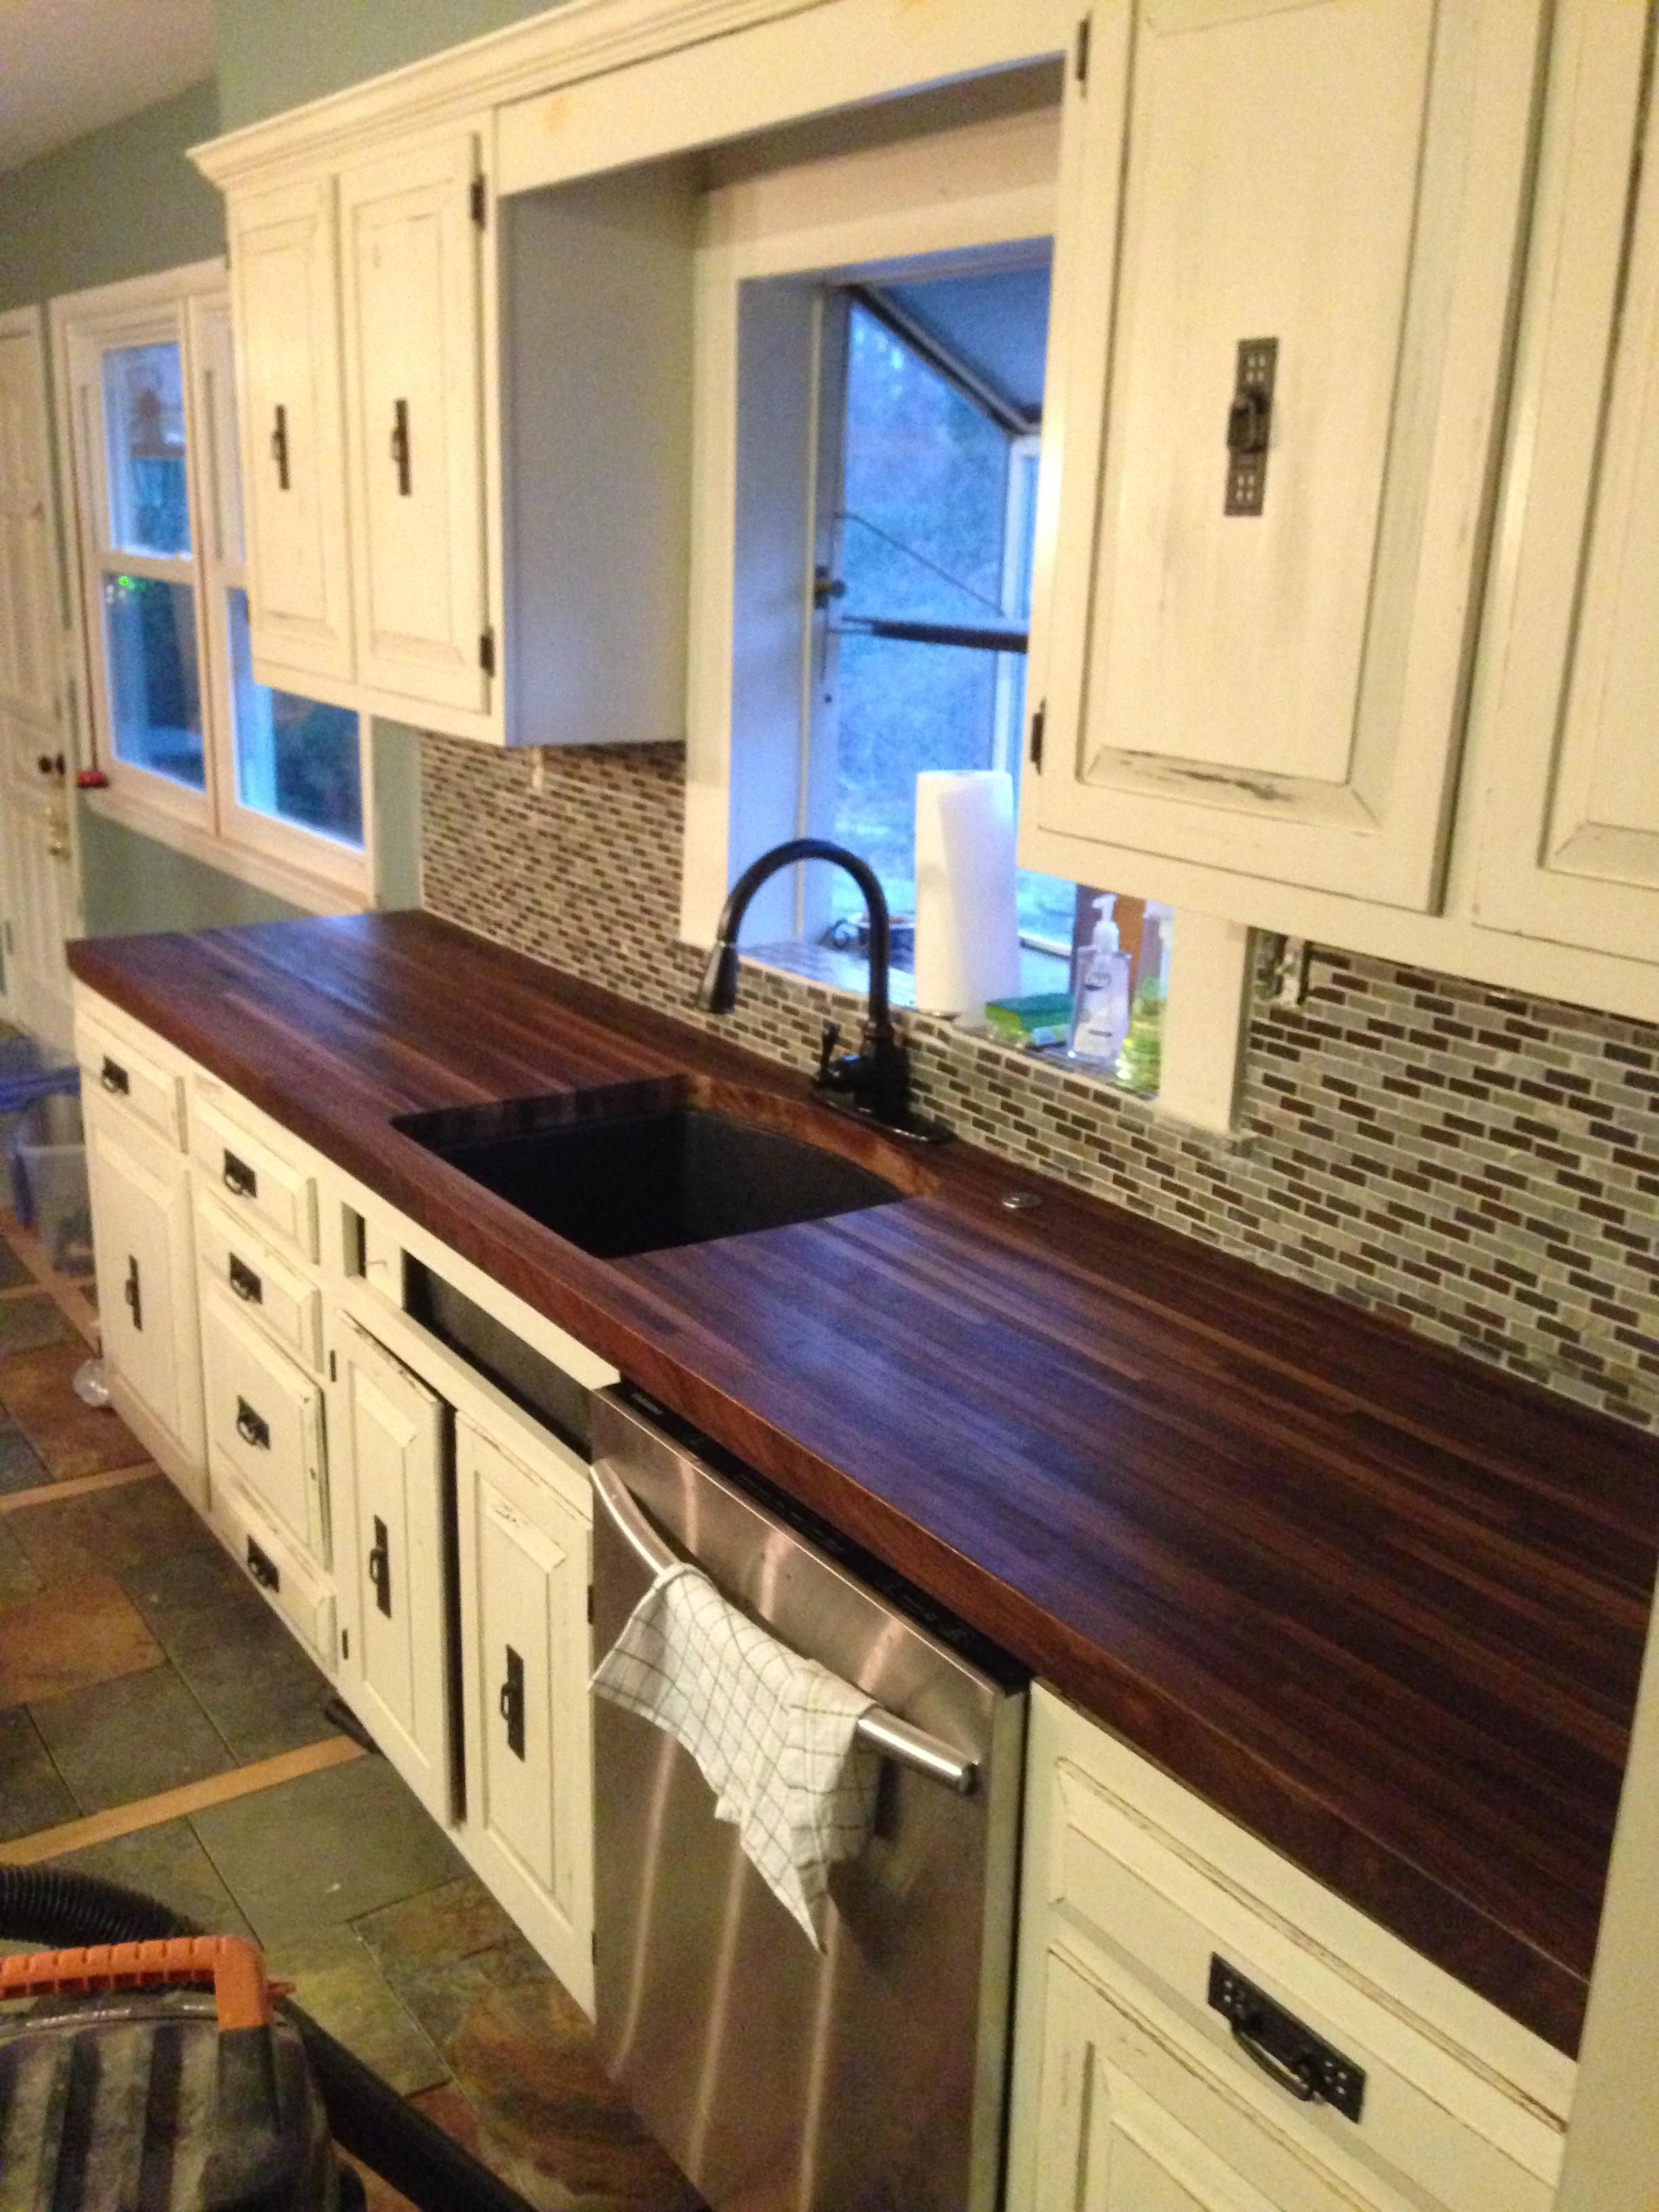 Black Walnut Kitchen Cabinets Built A Pair Of Black Walnut Butcher Block Countertops To Replace